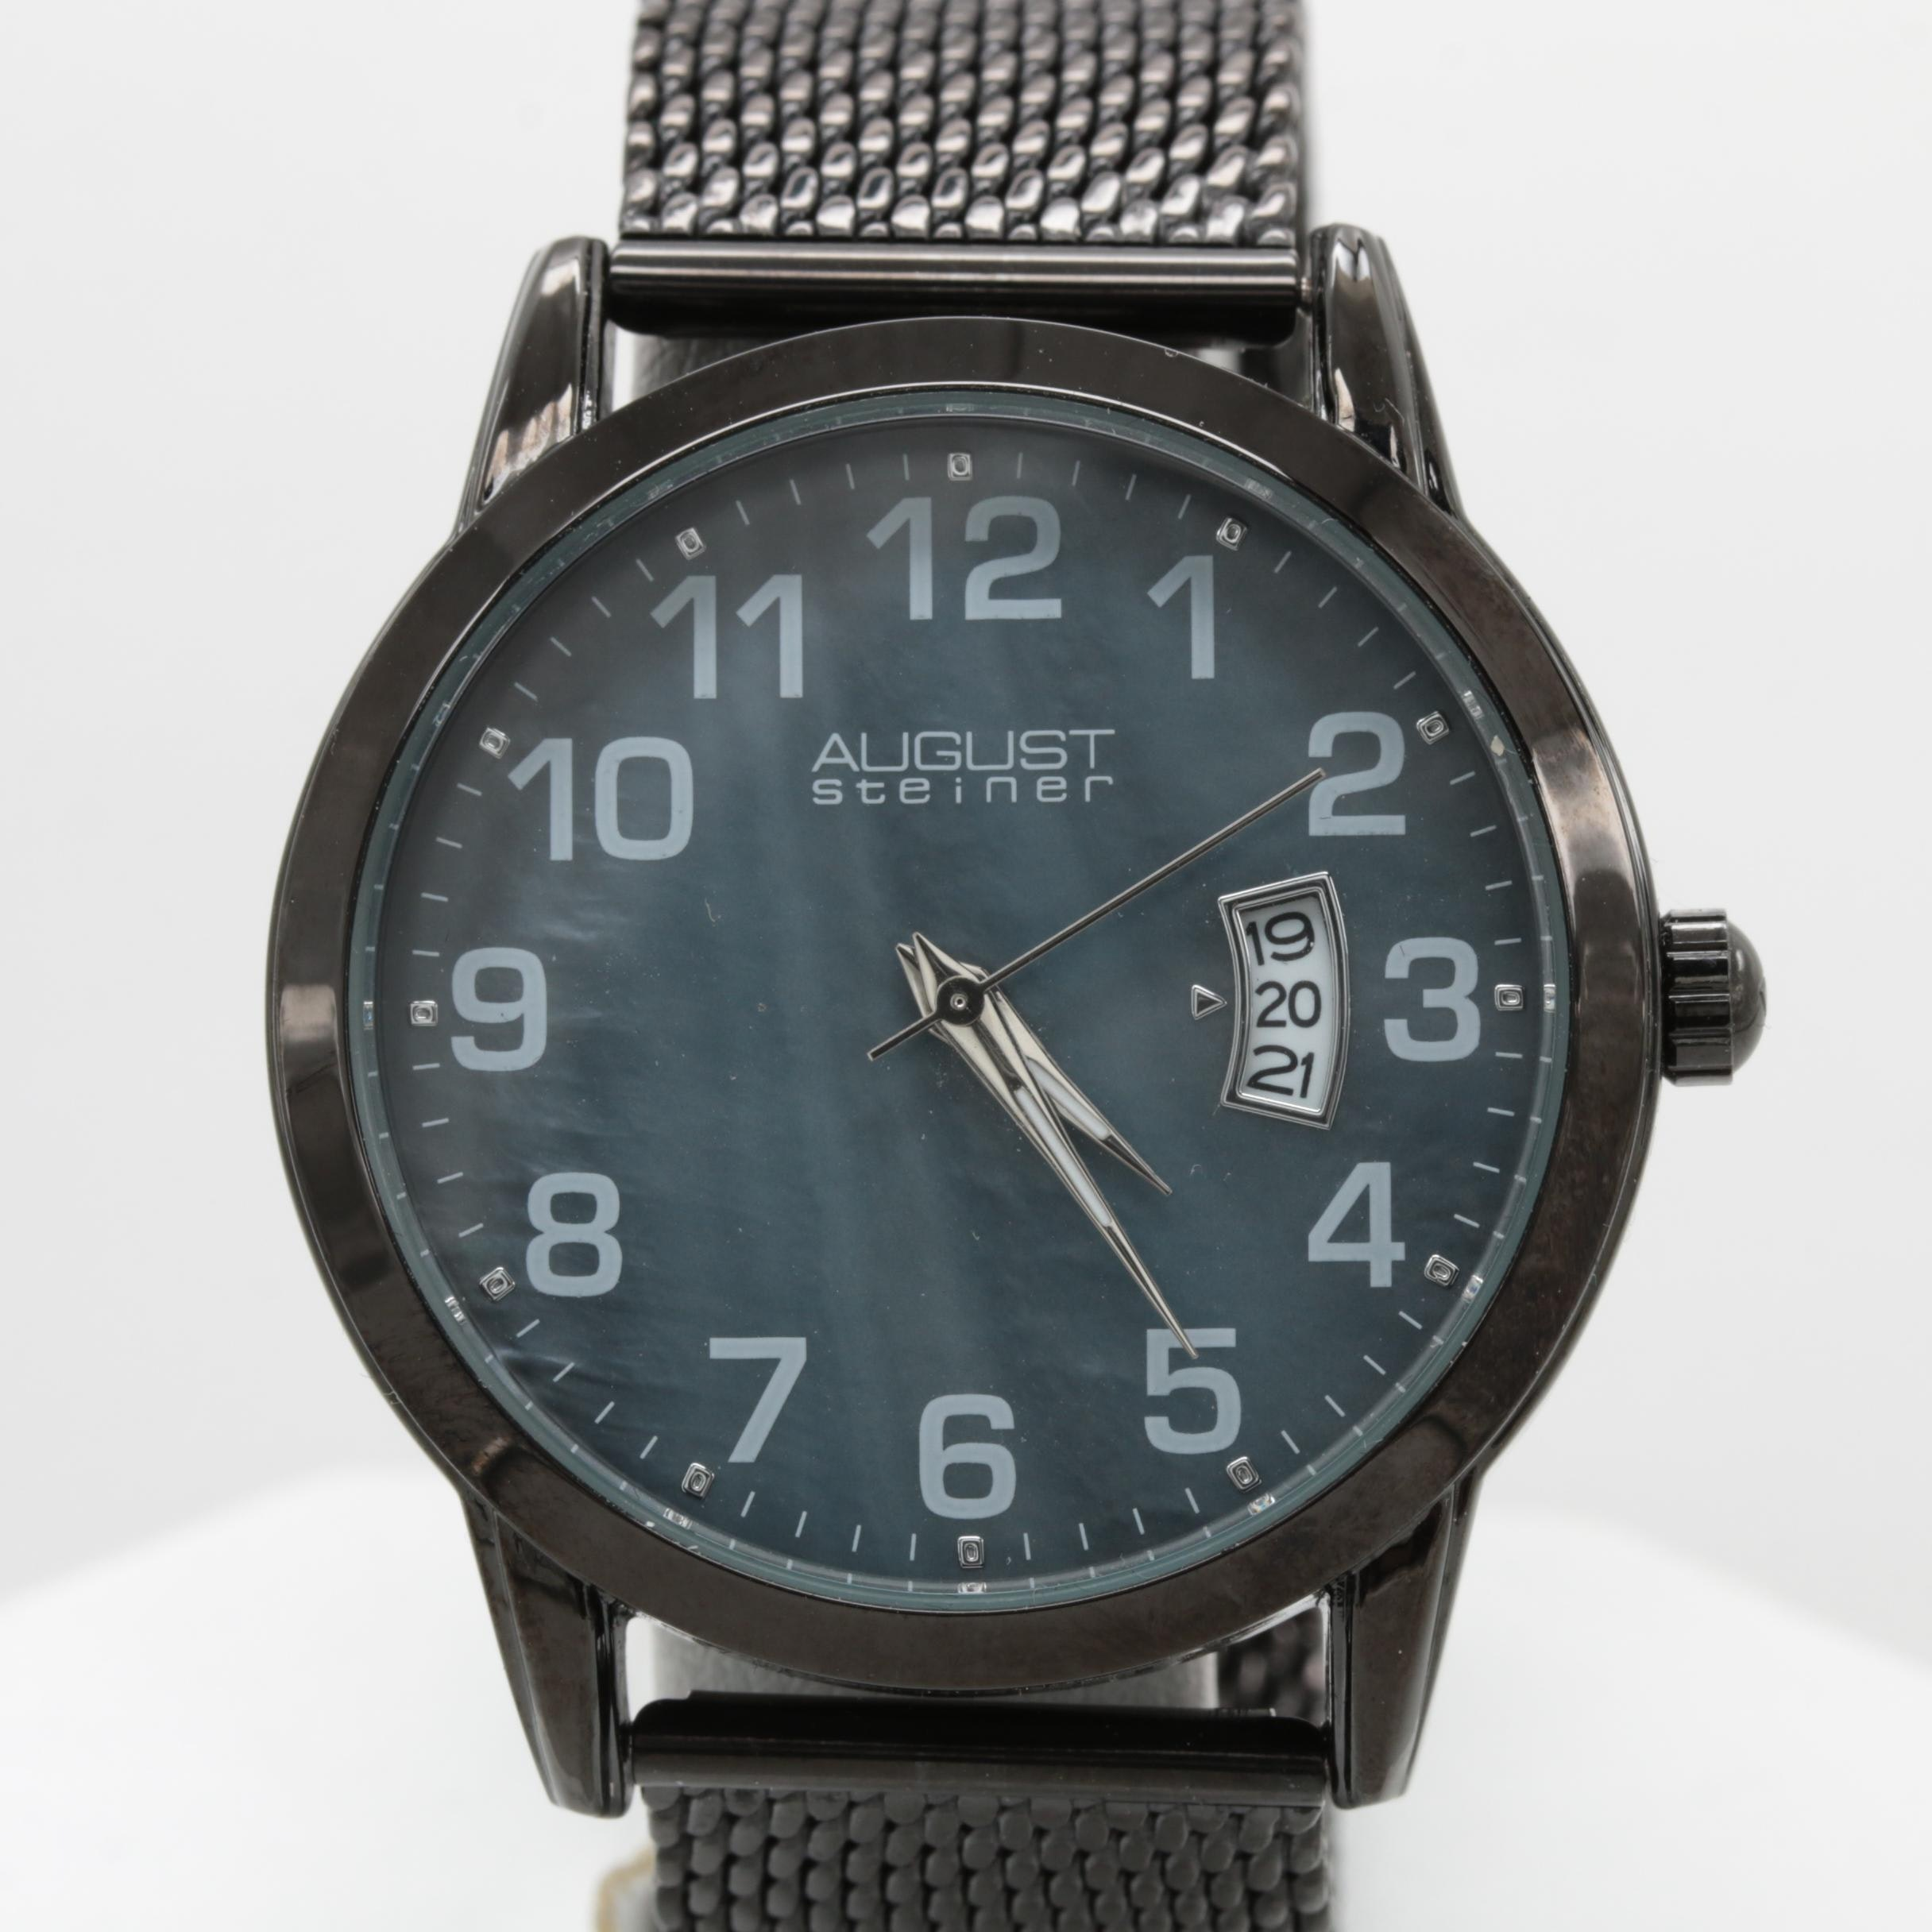 August Steiner Black PVD-Plated and Stainless Steel Wristwatch